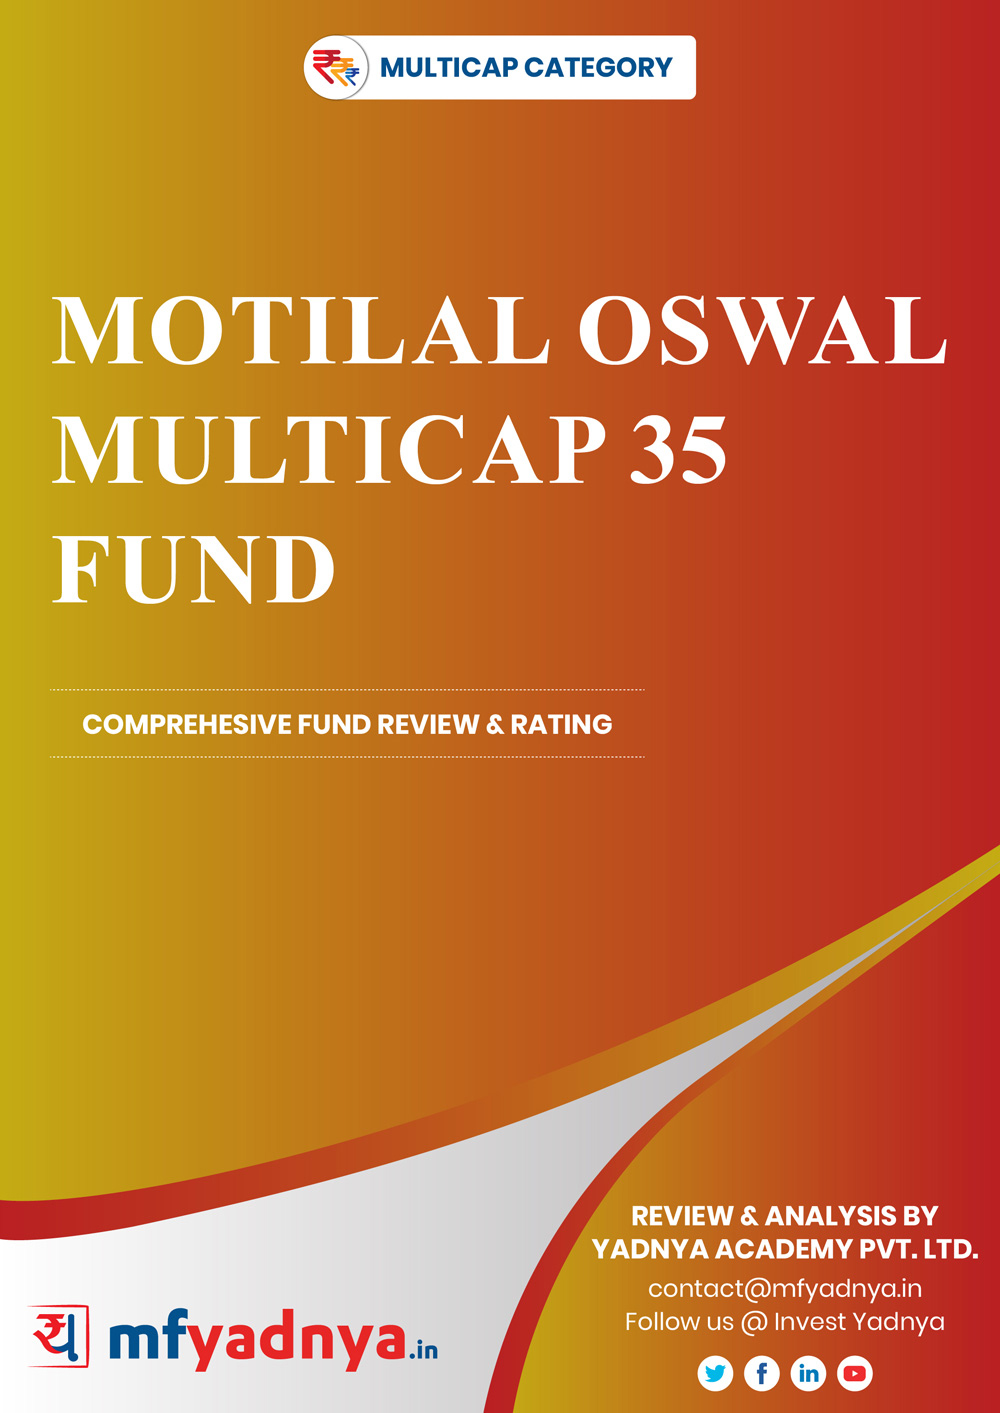 Multi-Cap Category Review -Motilal Oswal Multi-Cap 35 Fund. Most Comprehensive and detailed MF review based on Yadnya's proprietary methodology of Green, Yellow & Red Star. Detailed Analysis & Review based on July 31st, 2019 data.